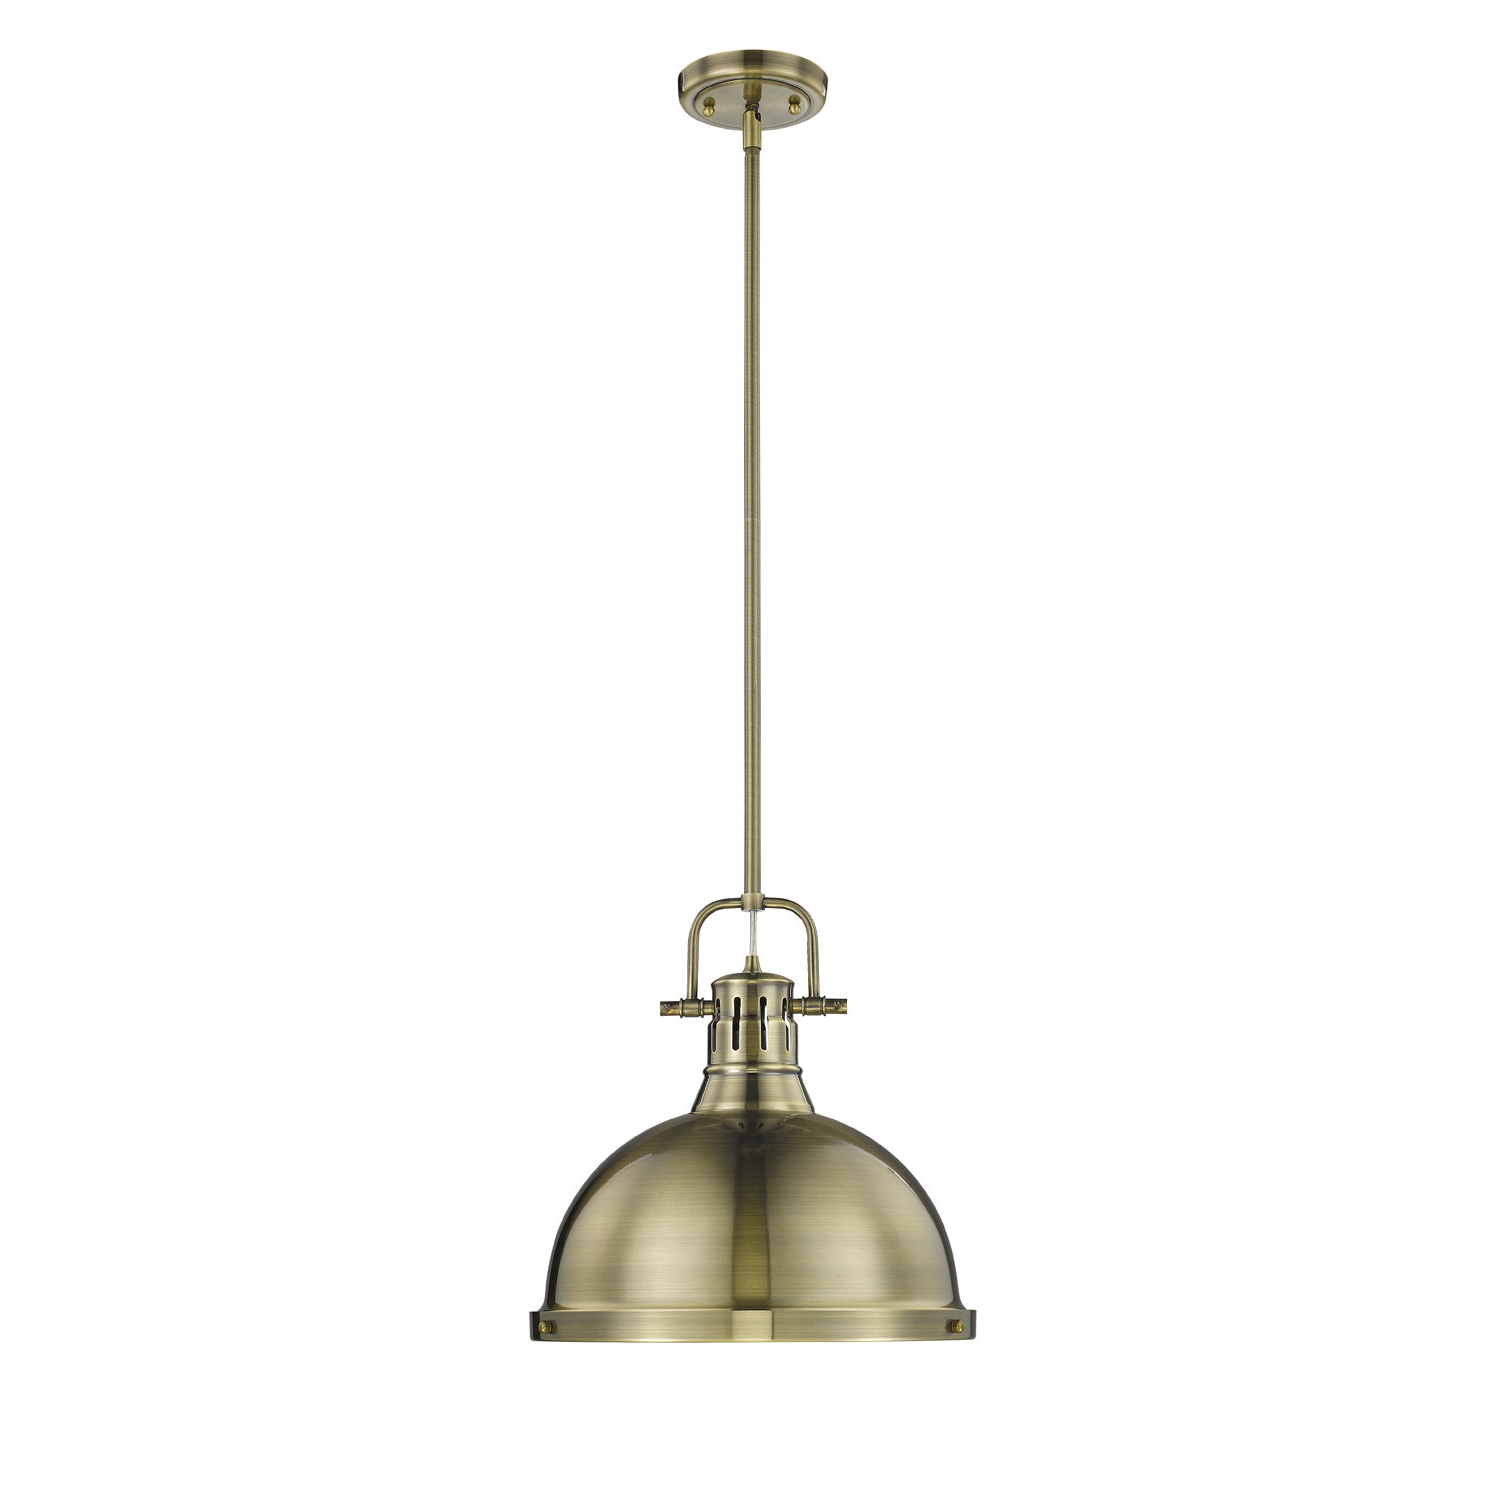 Bodalla 1 Light Single Dome Pendant With Regard To Most Recently Released Southlake 1 Light Single Dome Pendants (View 10 of 25)